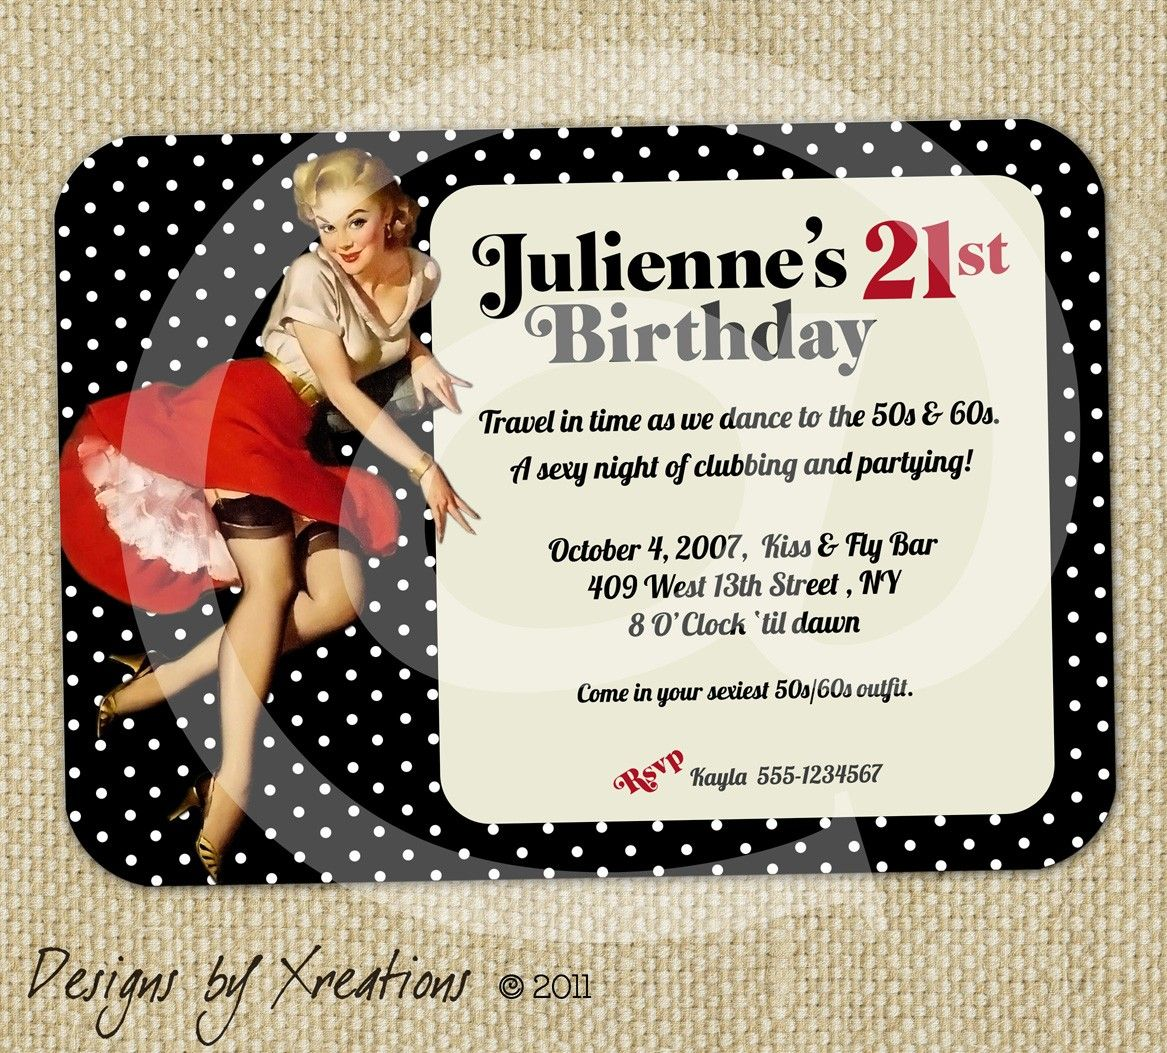 retro swimsuit pin up girl bachelorette party custom invite – Customizable Bachelorette Party Invitations